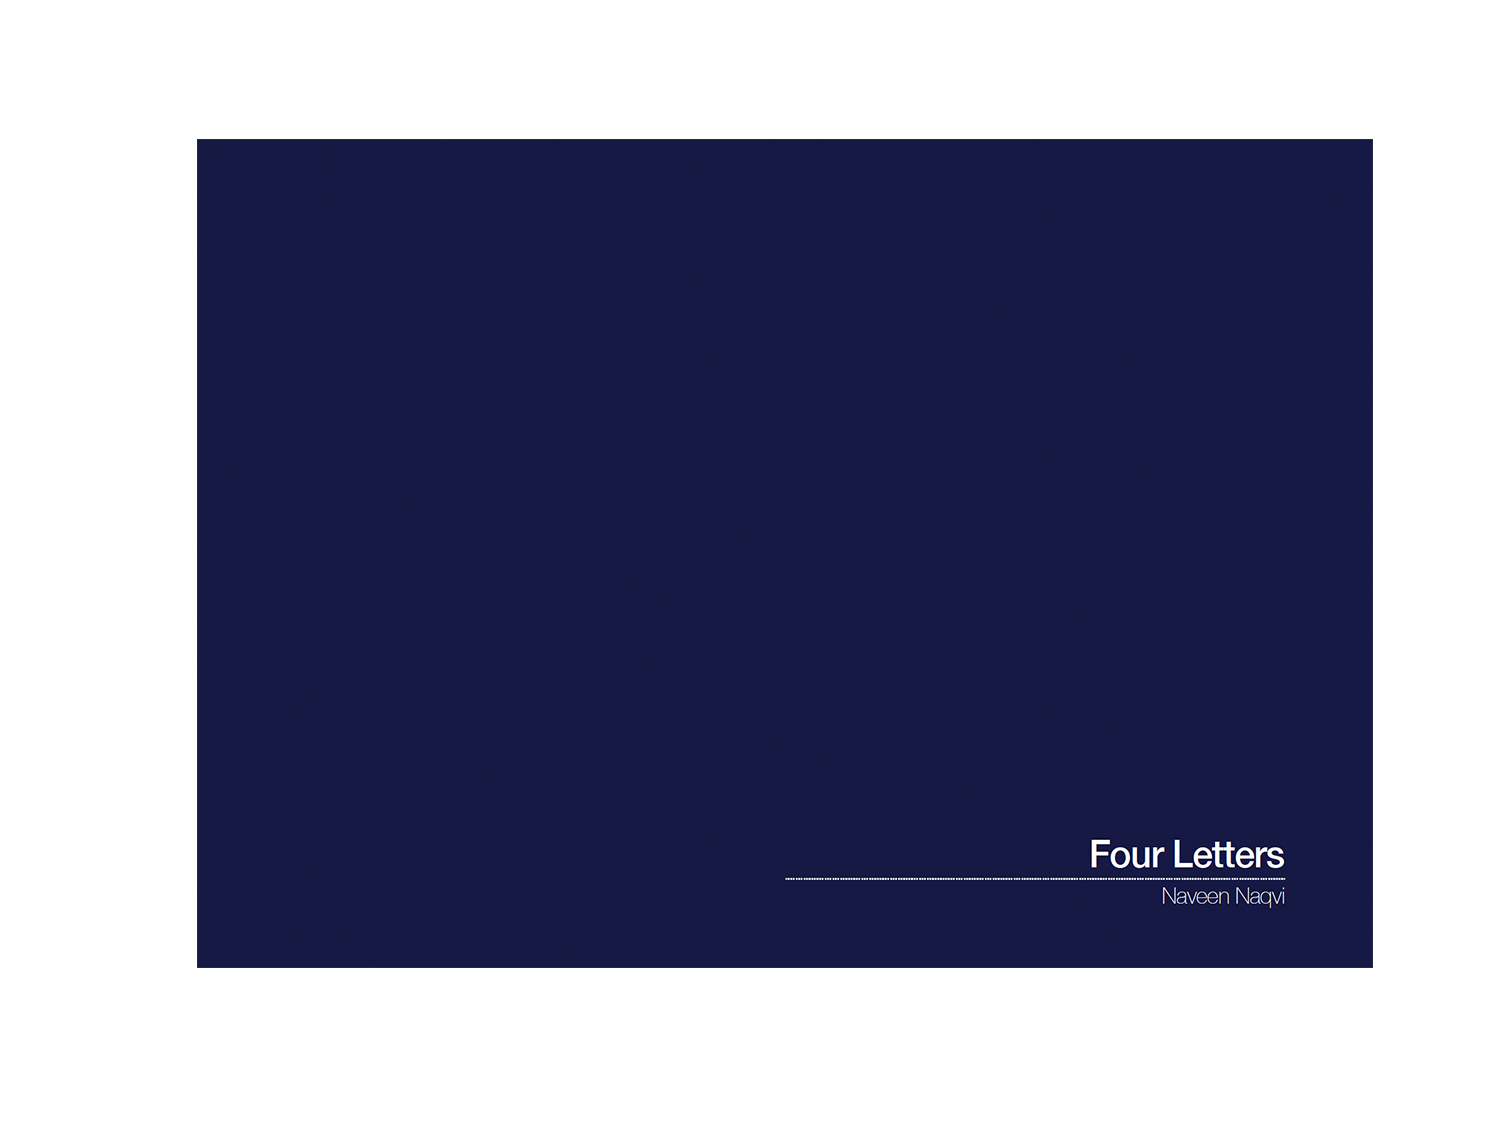 four-letters-cover.jpg